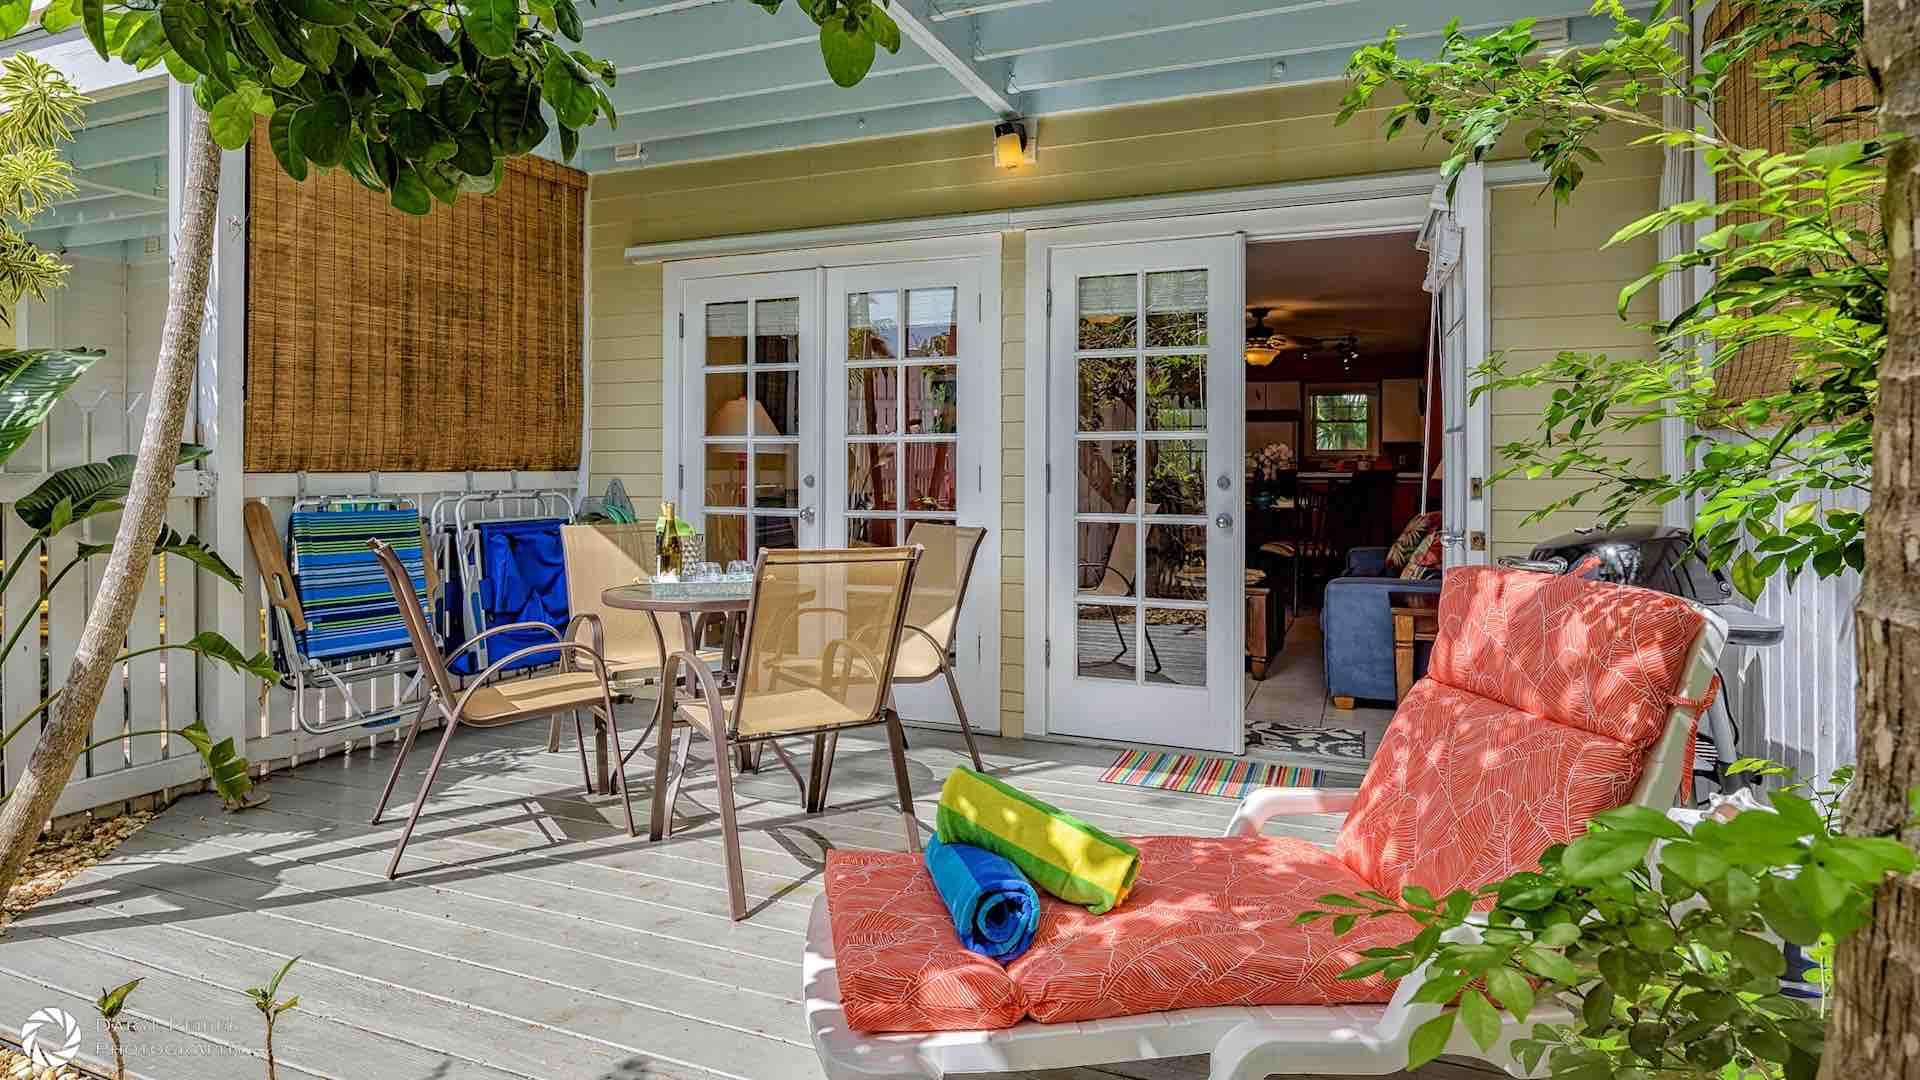 The back deck offers outdoor dining and lounging...